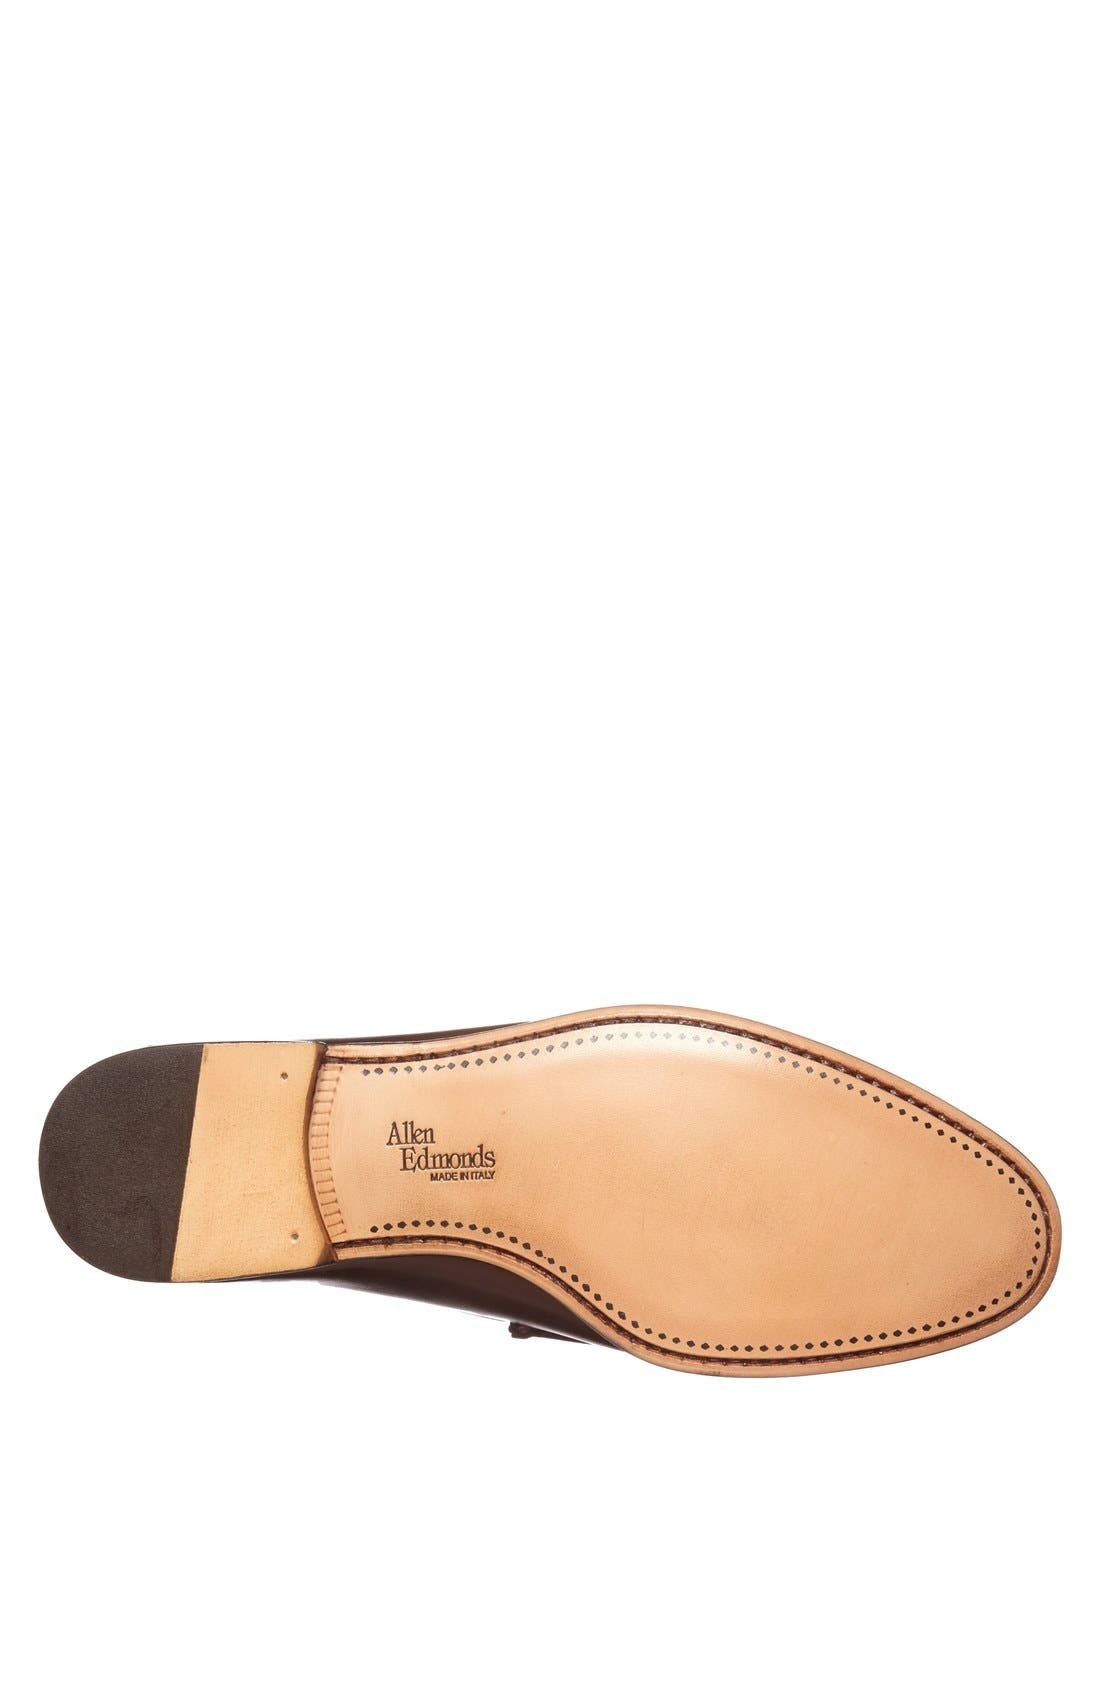 Verona II Bit Loafer,                             Alternate thumbnail 4, color,                             Brown/ Brown